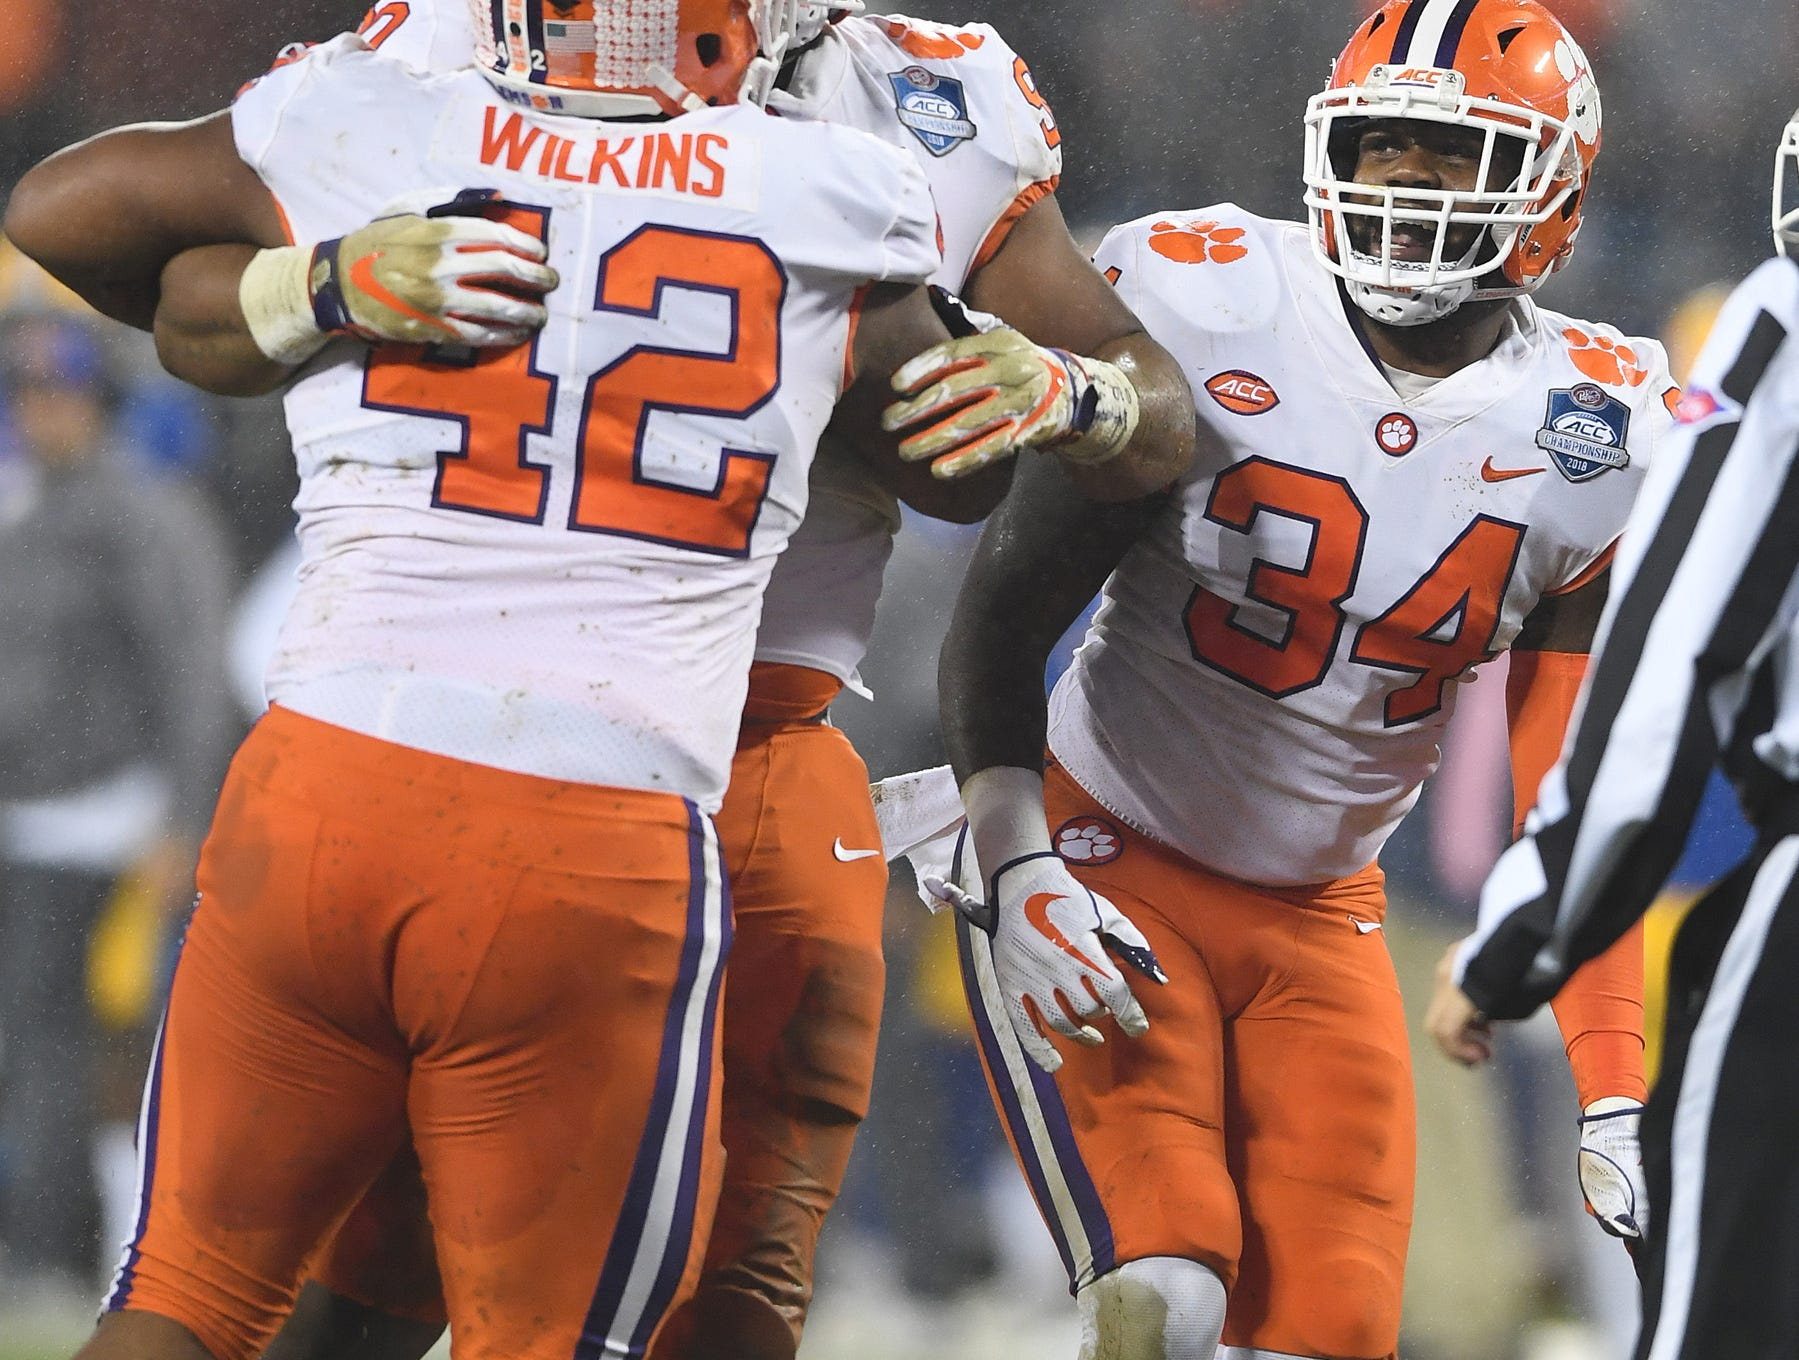 Clemson defensive lineman Christian Wilkins (42) celebrates with defensive lineman Dexter Lawrence (90) after a defensive stop against Pittsburgh during the 1st quarter of the Dr. Pepper ACC Championship at Bank of America Stadium in Charlotte, N.C. Saturday, December 1, 2018.